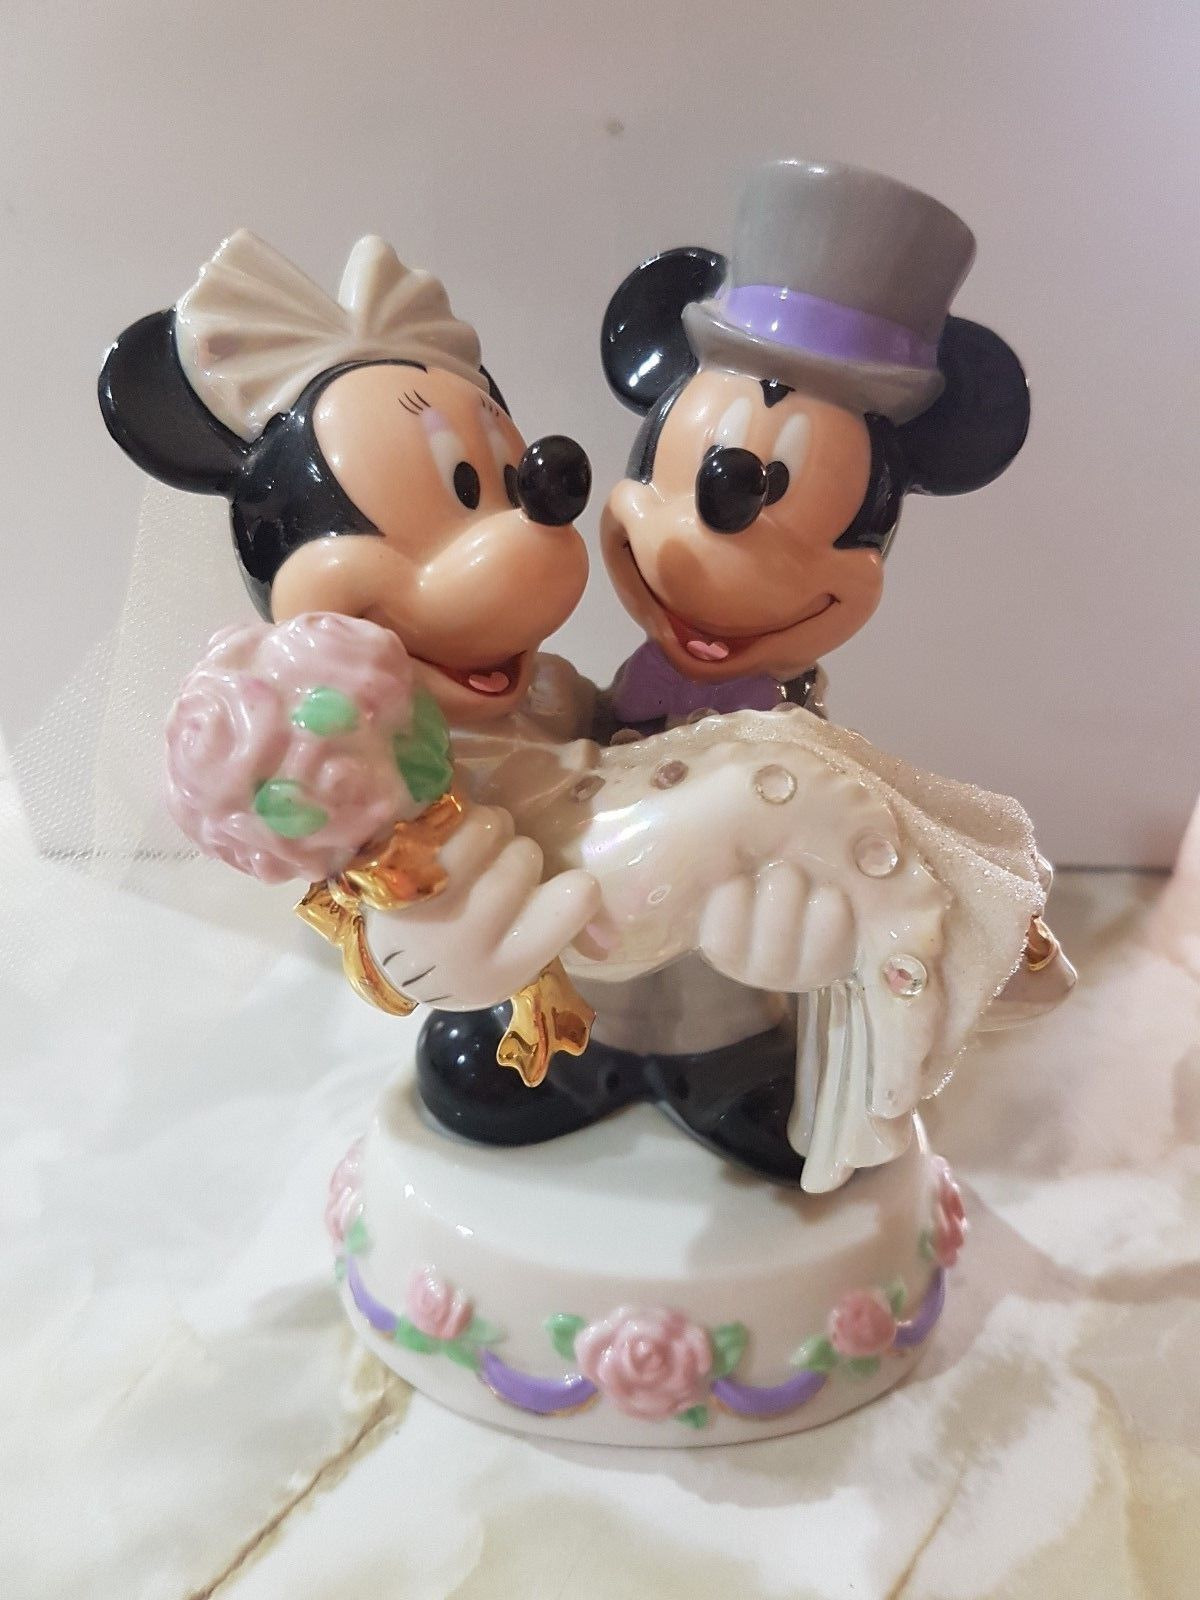 disney wedding cake toppers australia wedding cake toppers australia ankaperla 13591